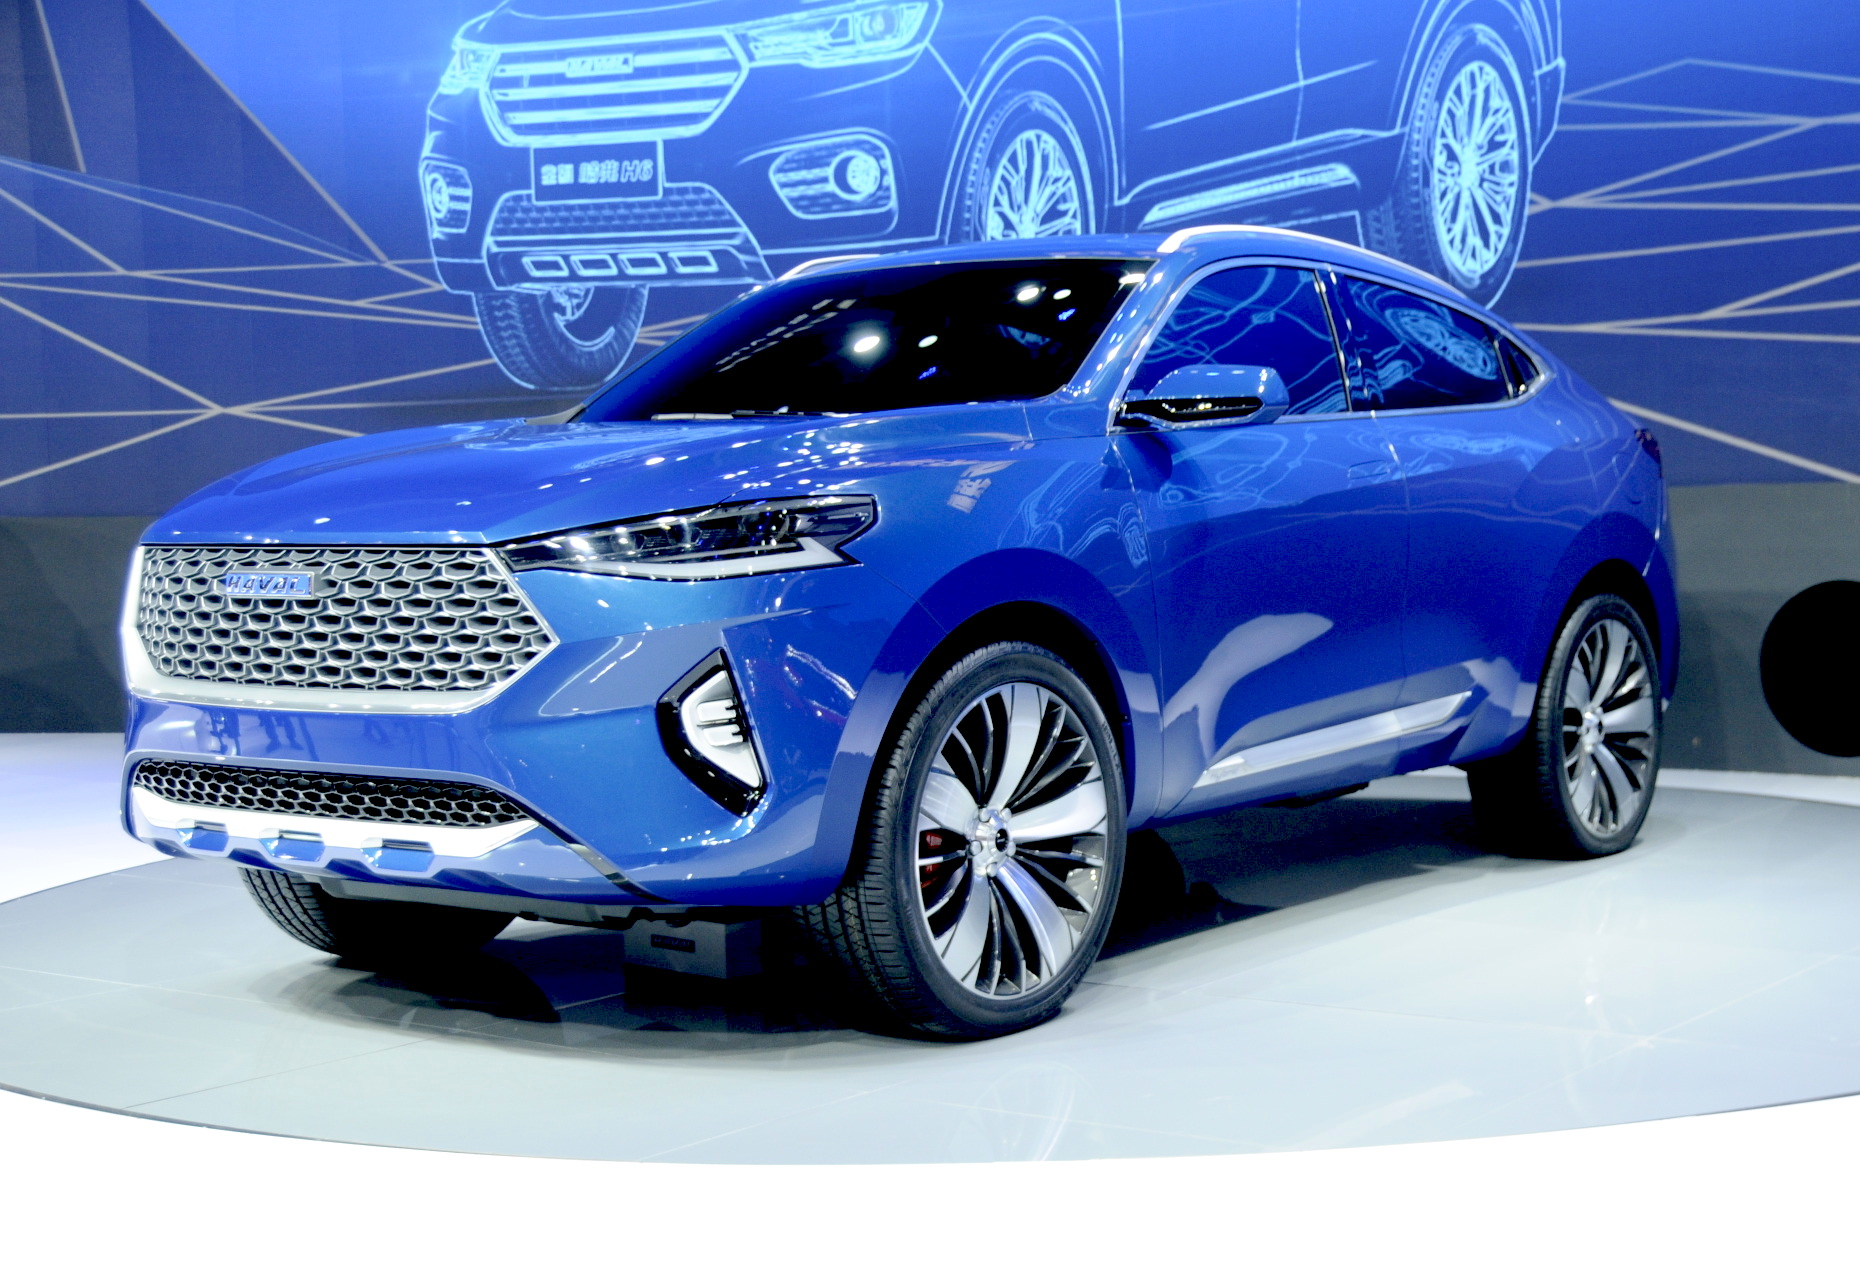 News Haval Hb 03 Concept Previews Hero Hybrid Coupe Suv